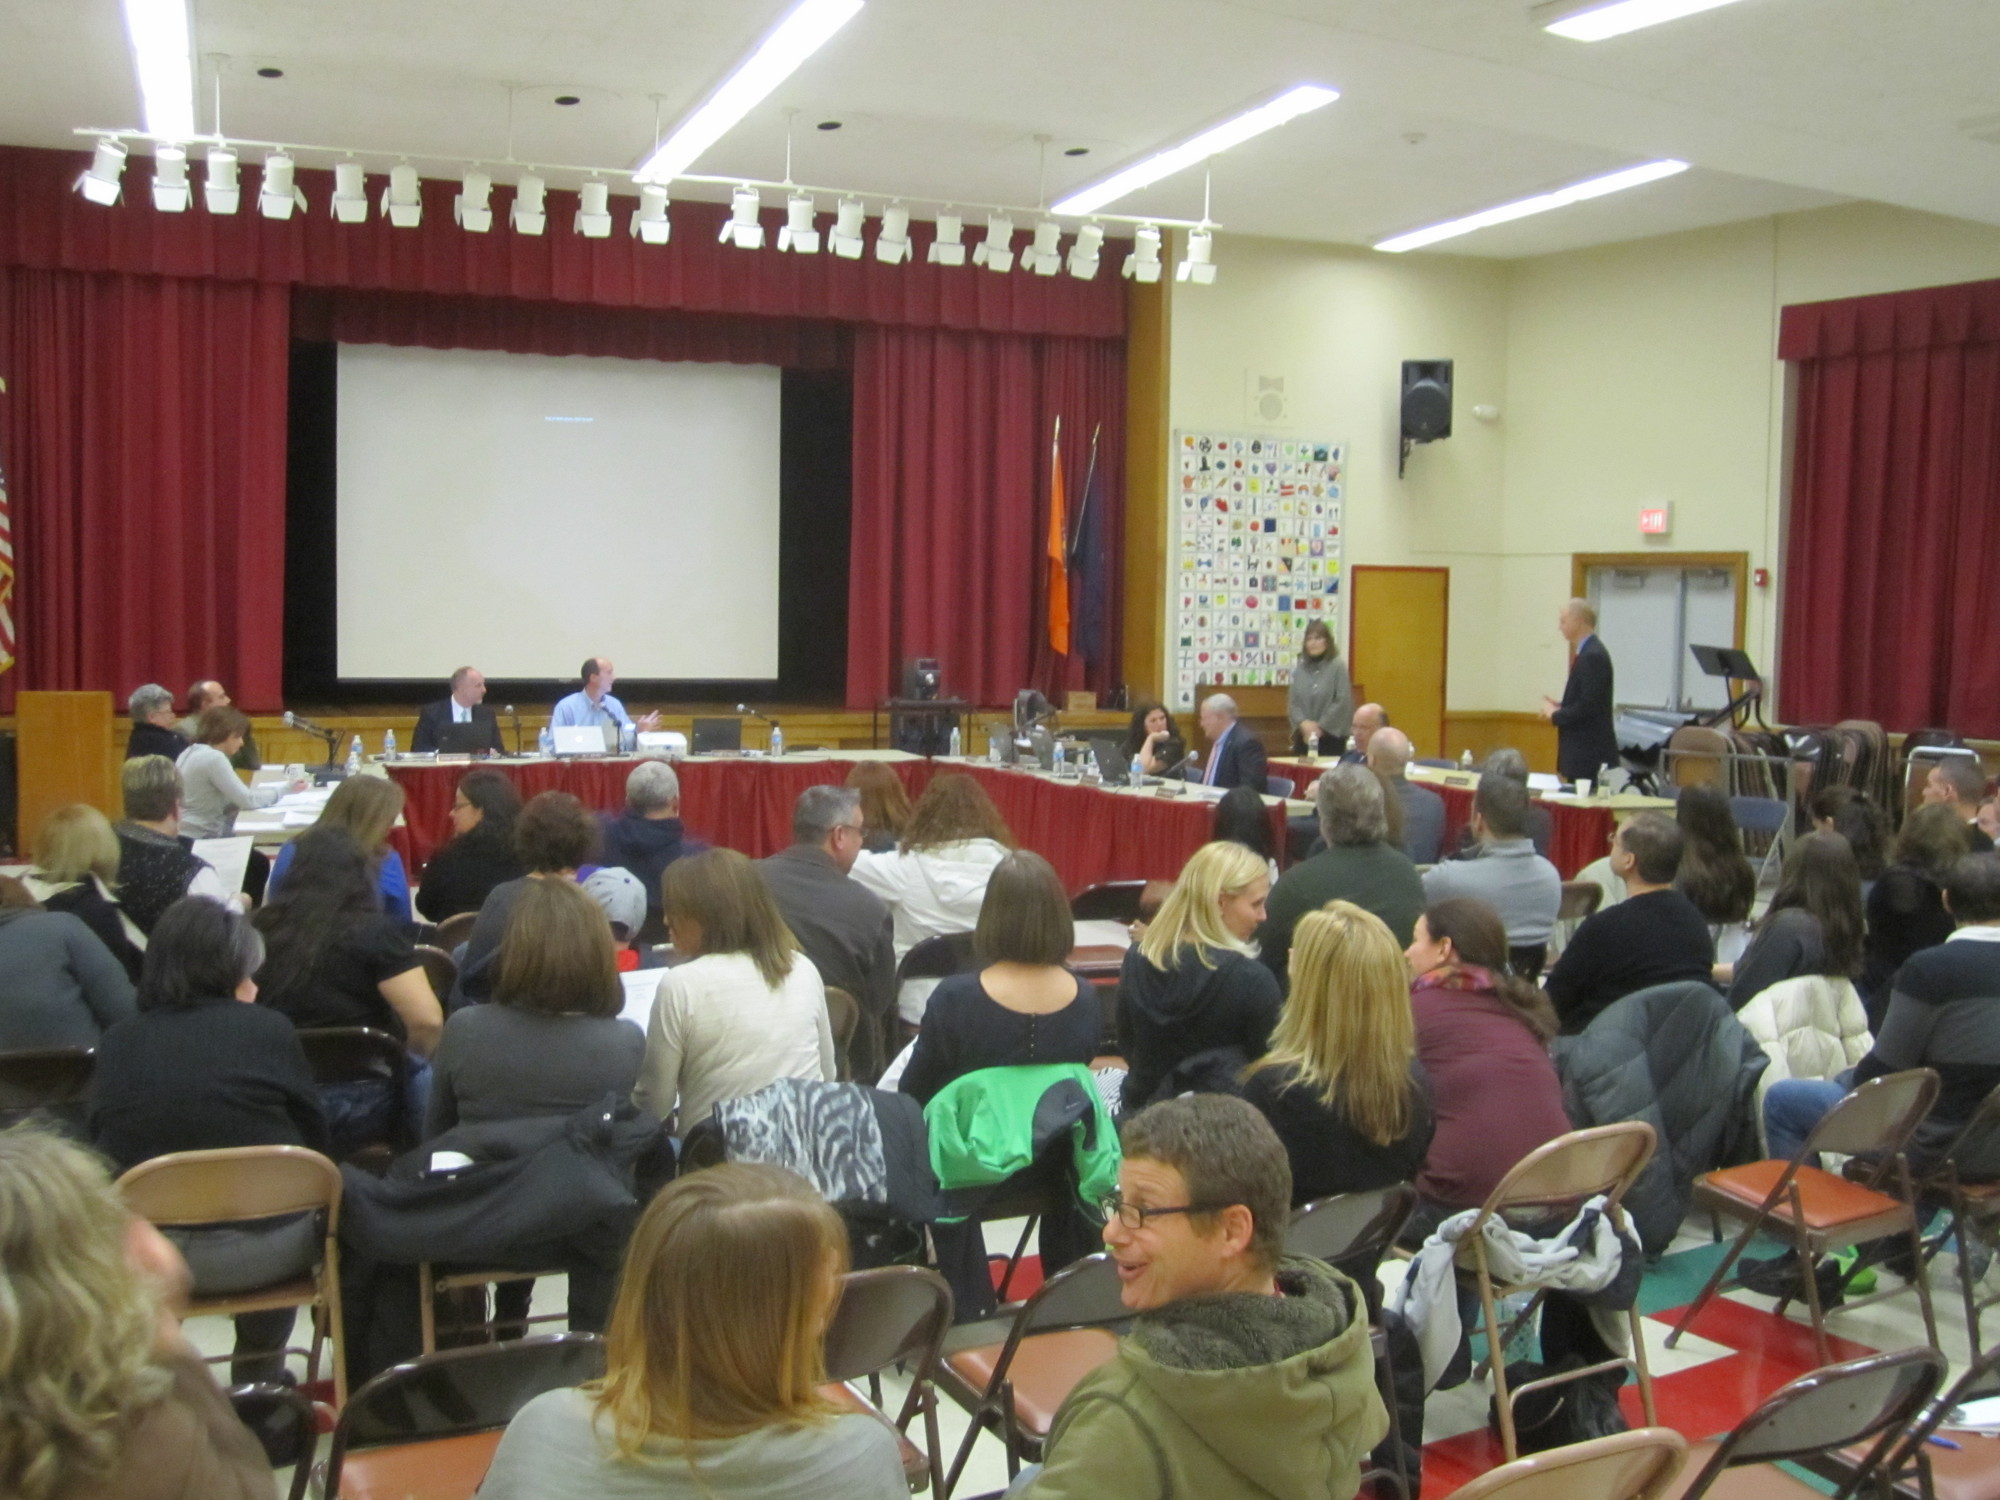 North Merrick Board of Education trustees, district administrators and parents discussed the merits of more than a dozen proposals to increase school security at a special meeting at Fayette Elementary School on March 12.